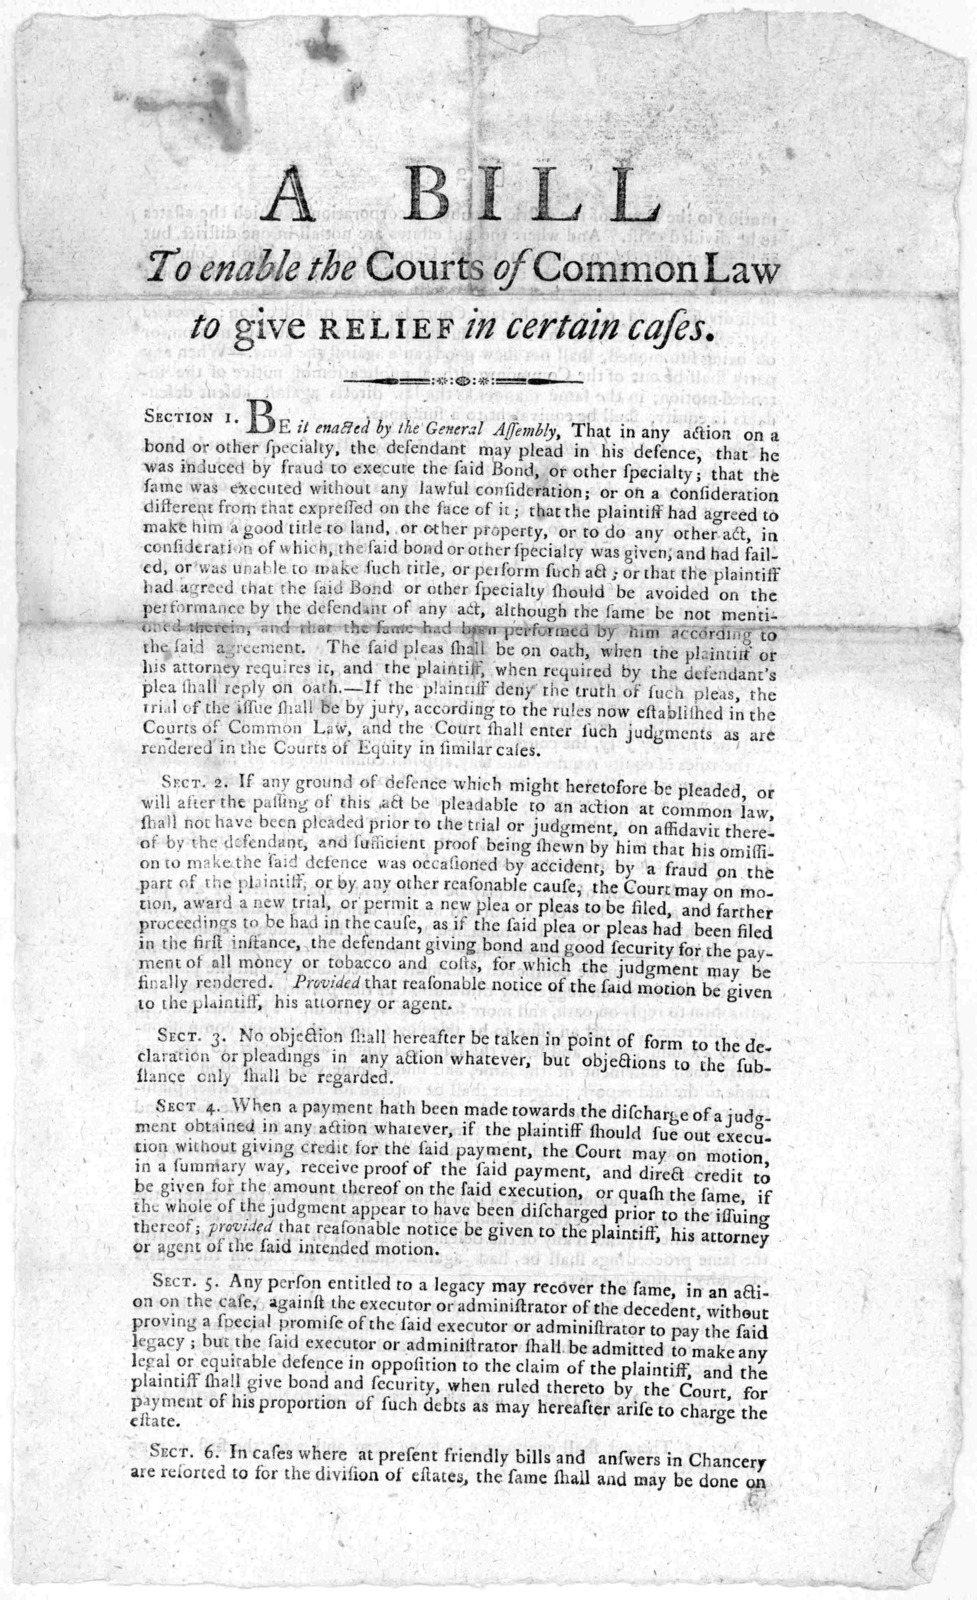 A bill to enable the Courts of Common law to give relief in certain cases. [n. d.].